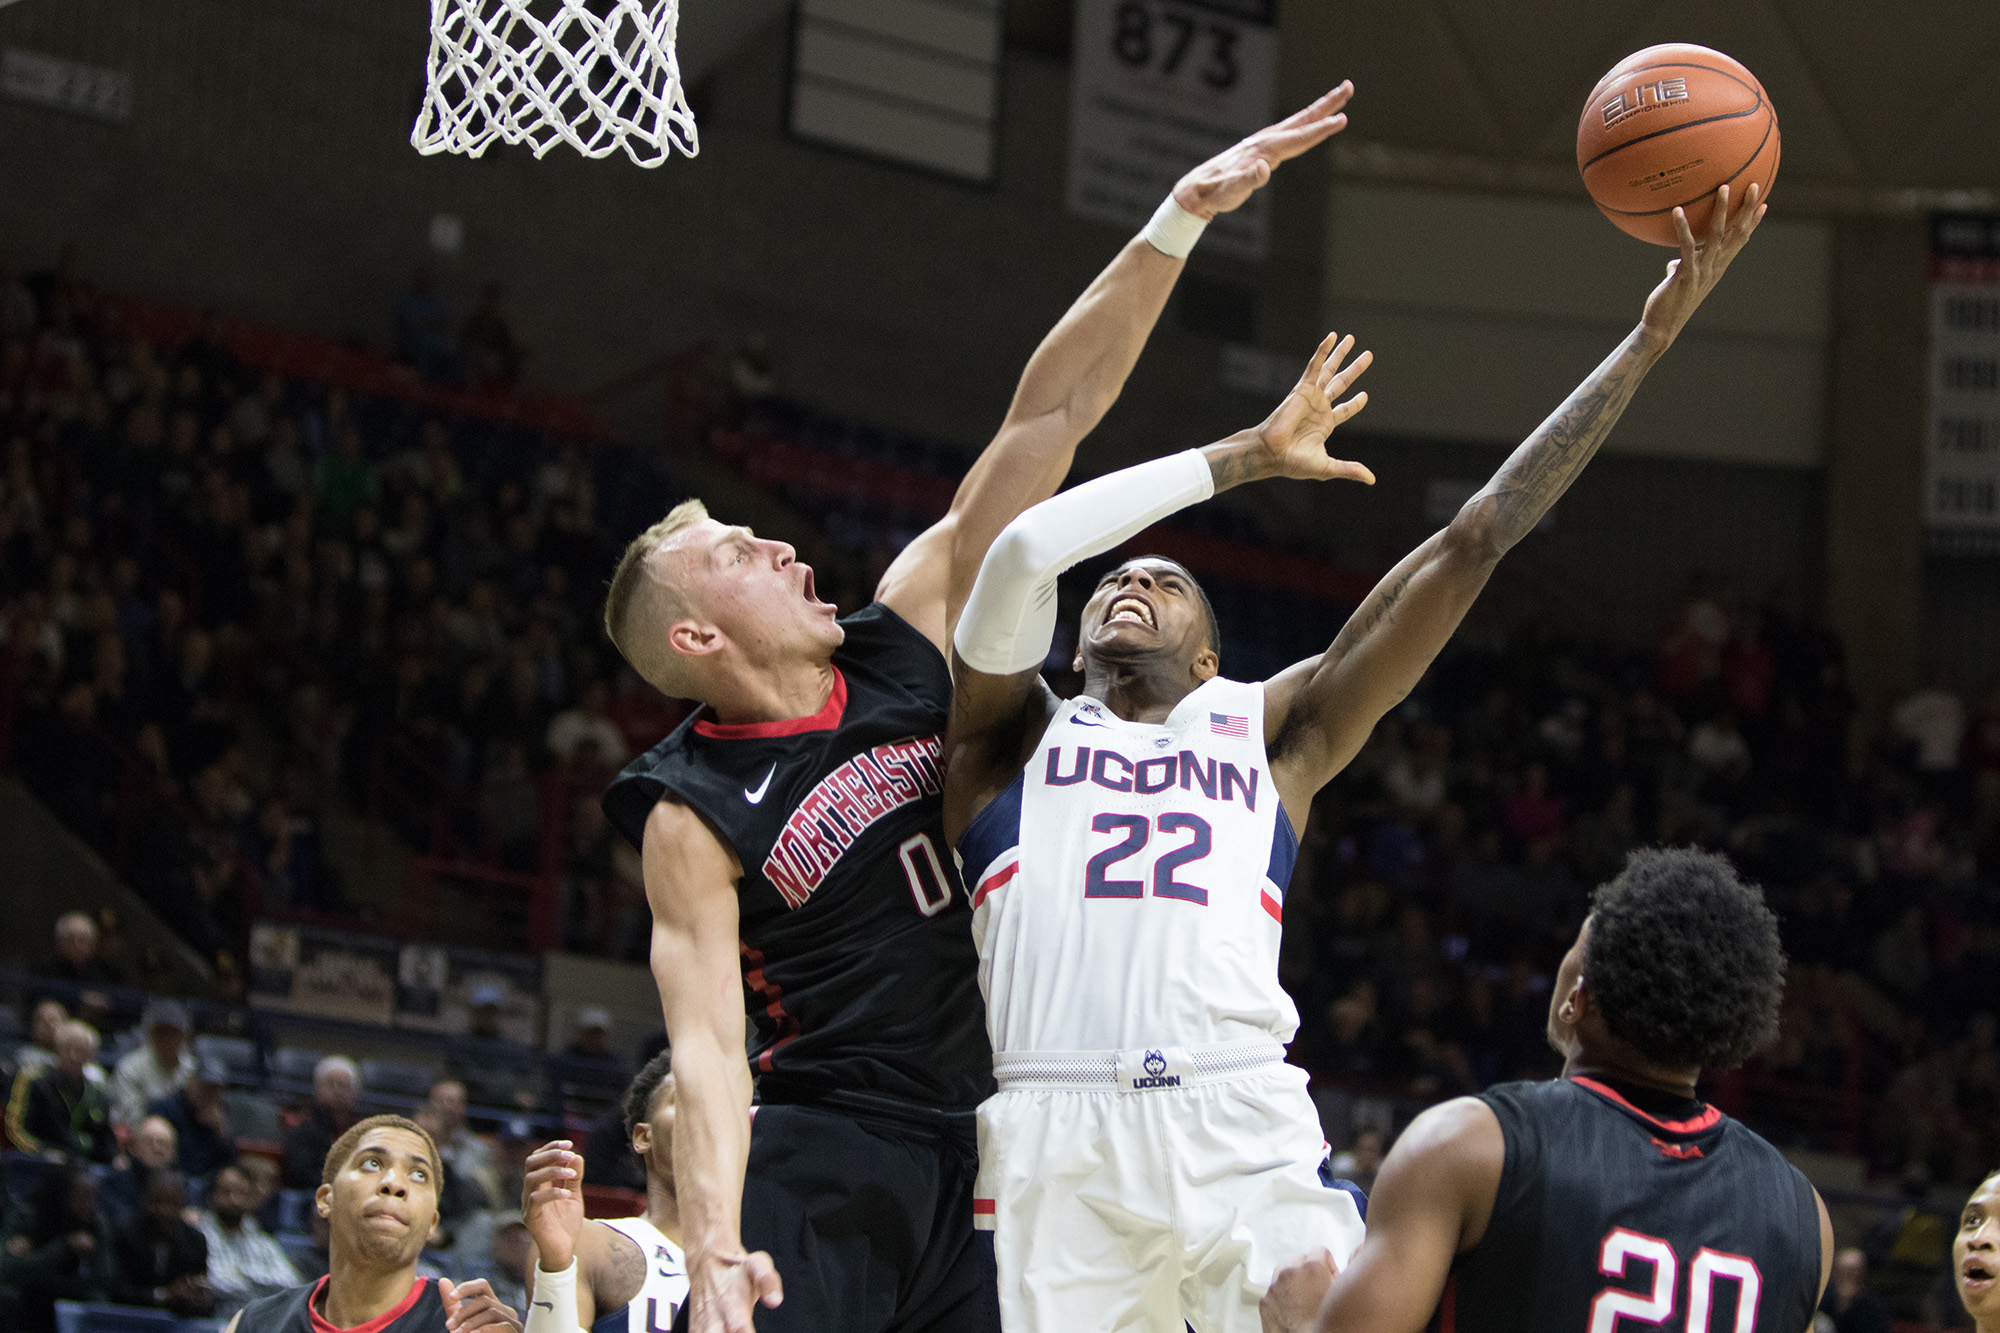 Pictured:  Terrier Larrier, number 22, against Northeastern opponent. The UConn mens' basketball team defeated Southern Connecticut 94-65 on Saturday Nov. 4,2016 at Gampel Pavilion. Senior forward Rodney Purvis led all scorers with 19 points.(Jackson Haigis/ The Daily Campus)